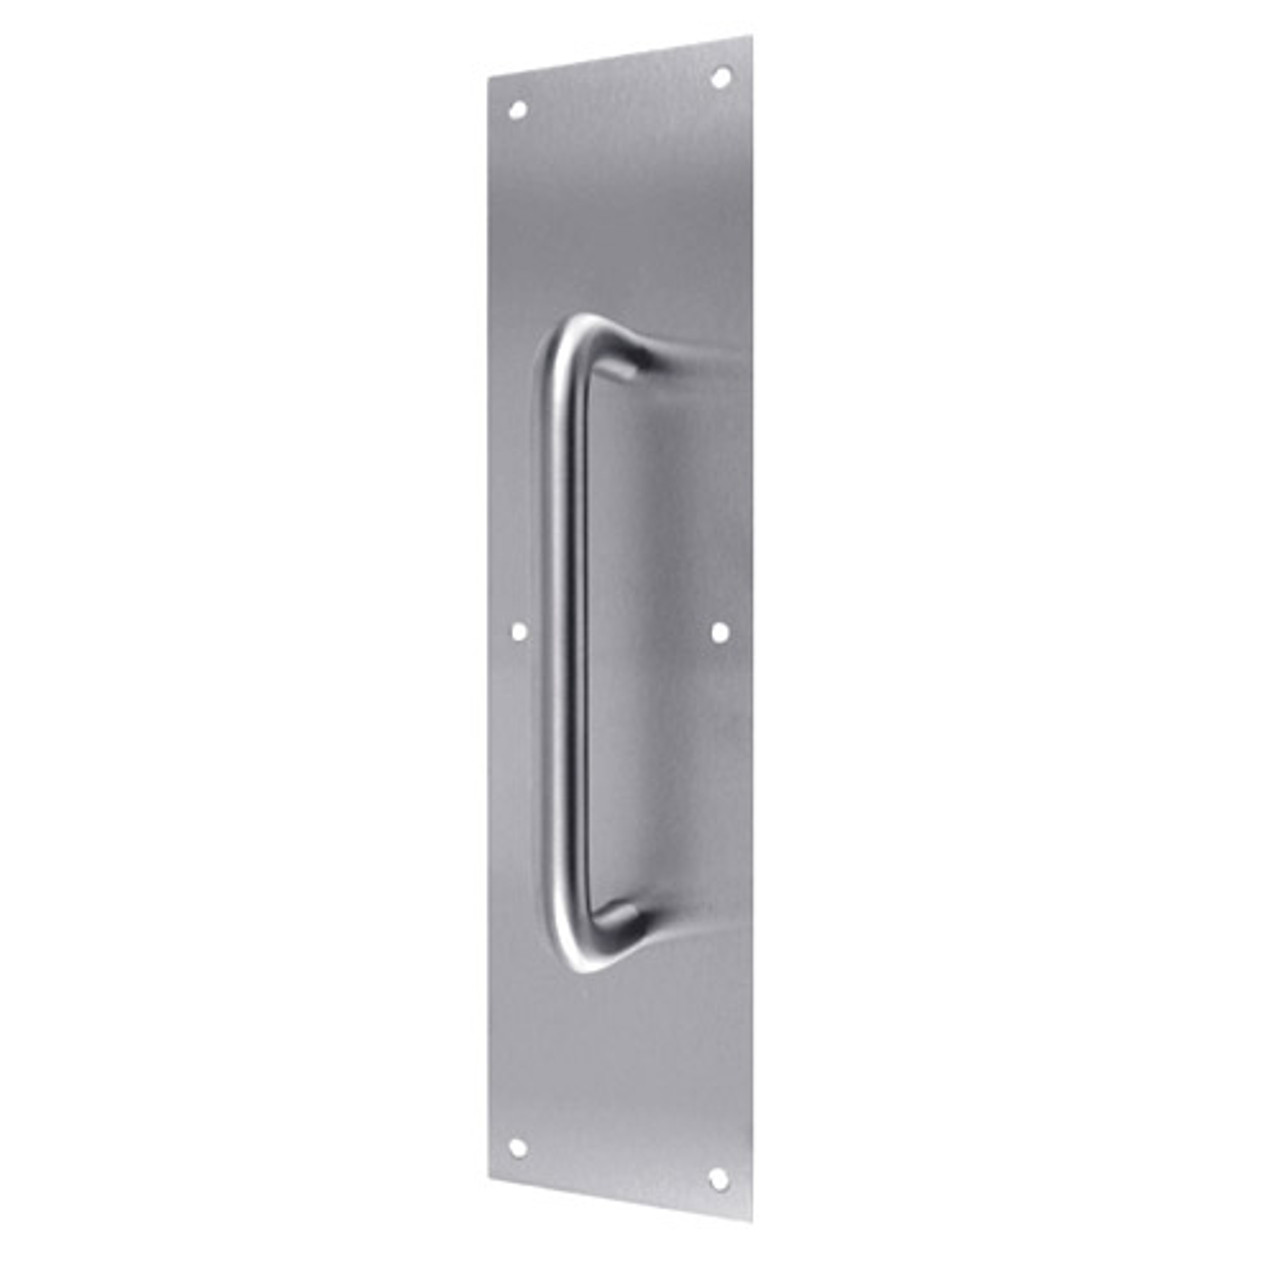 """7816-630 Don Jo 1/8"""" Thick Pull Plate with Round pull in Satin Stainless Steel Finish"""